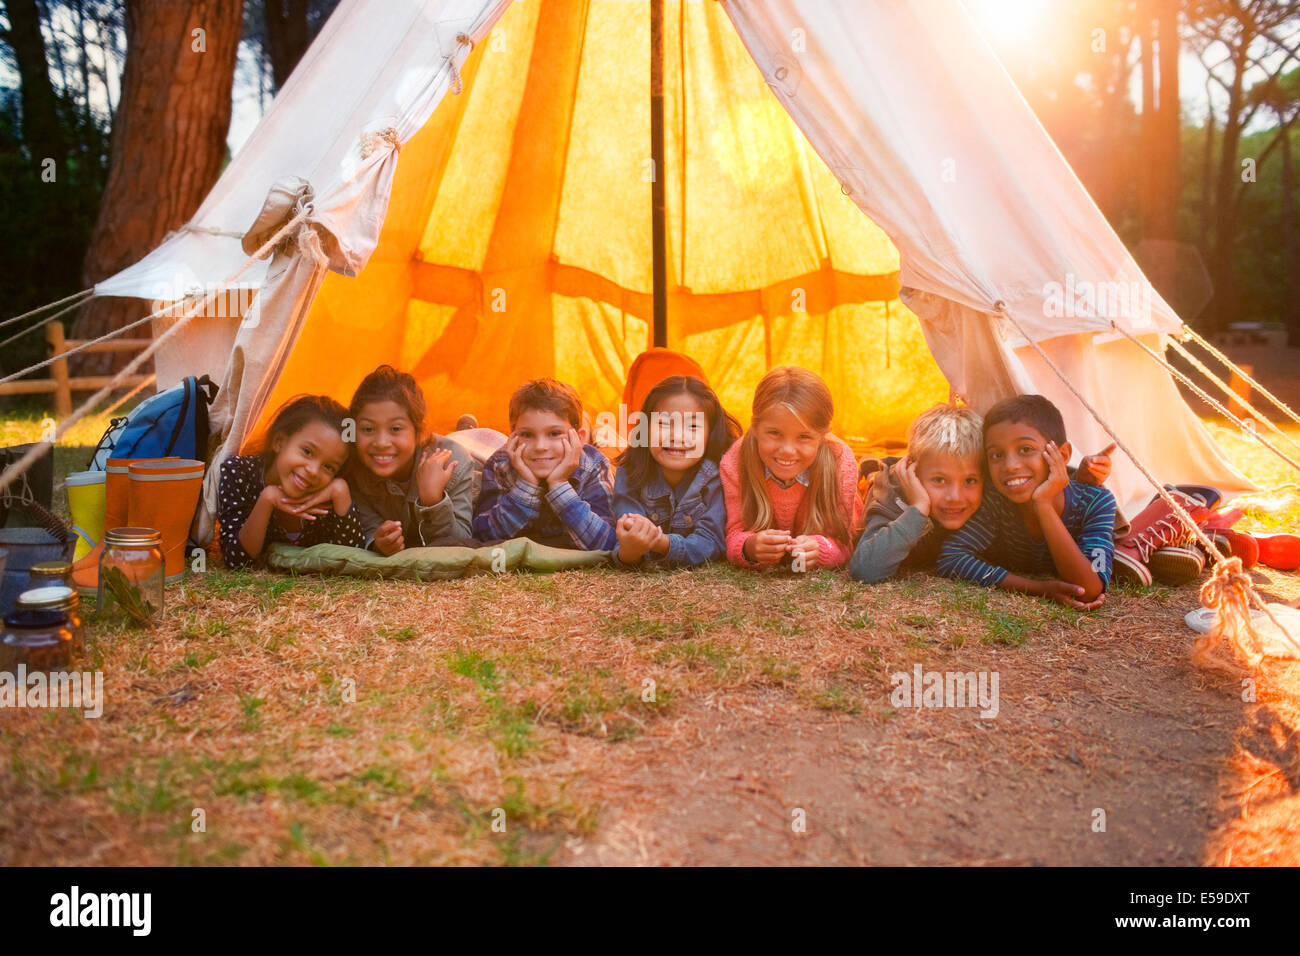 Children smiling in teepee at campsite Stock Photo